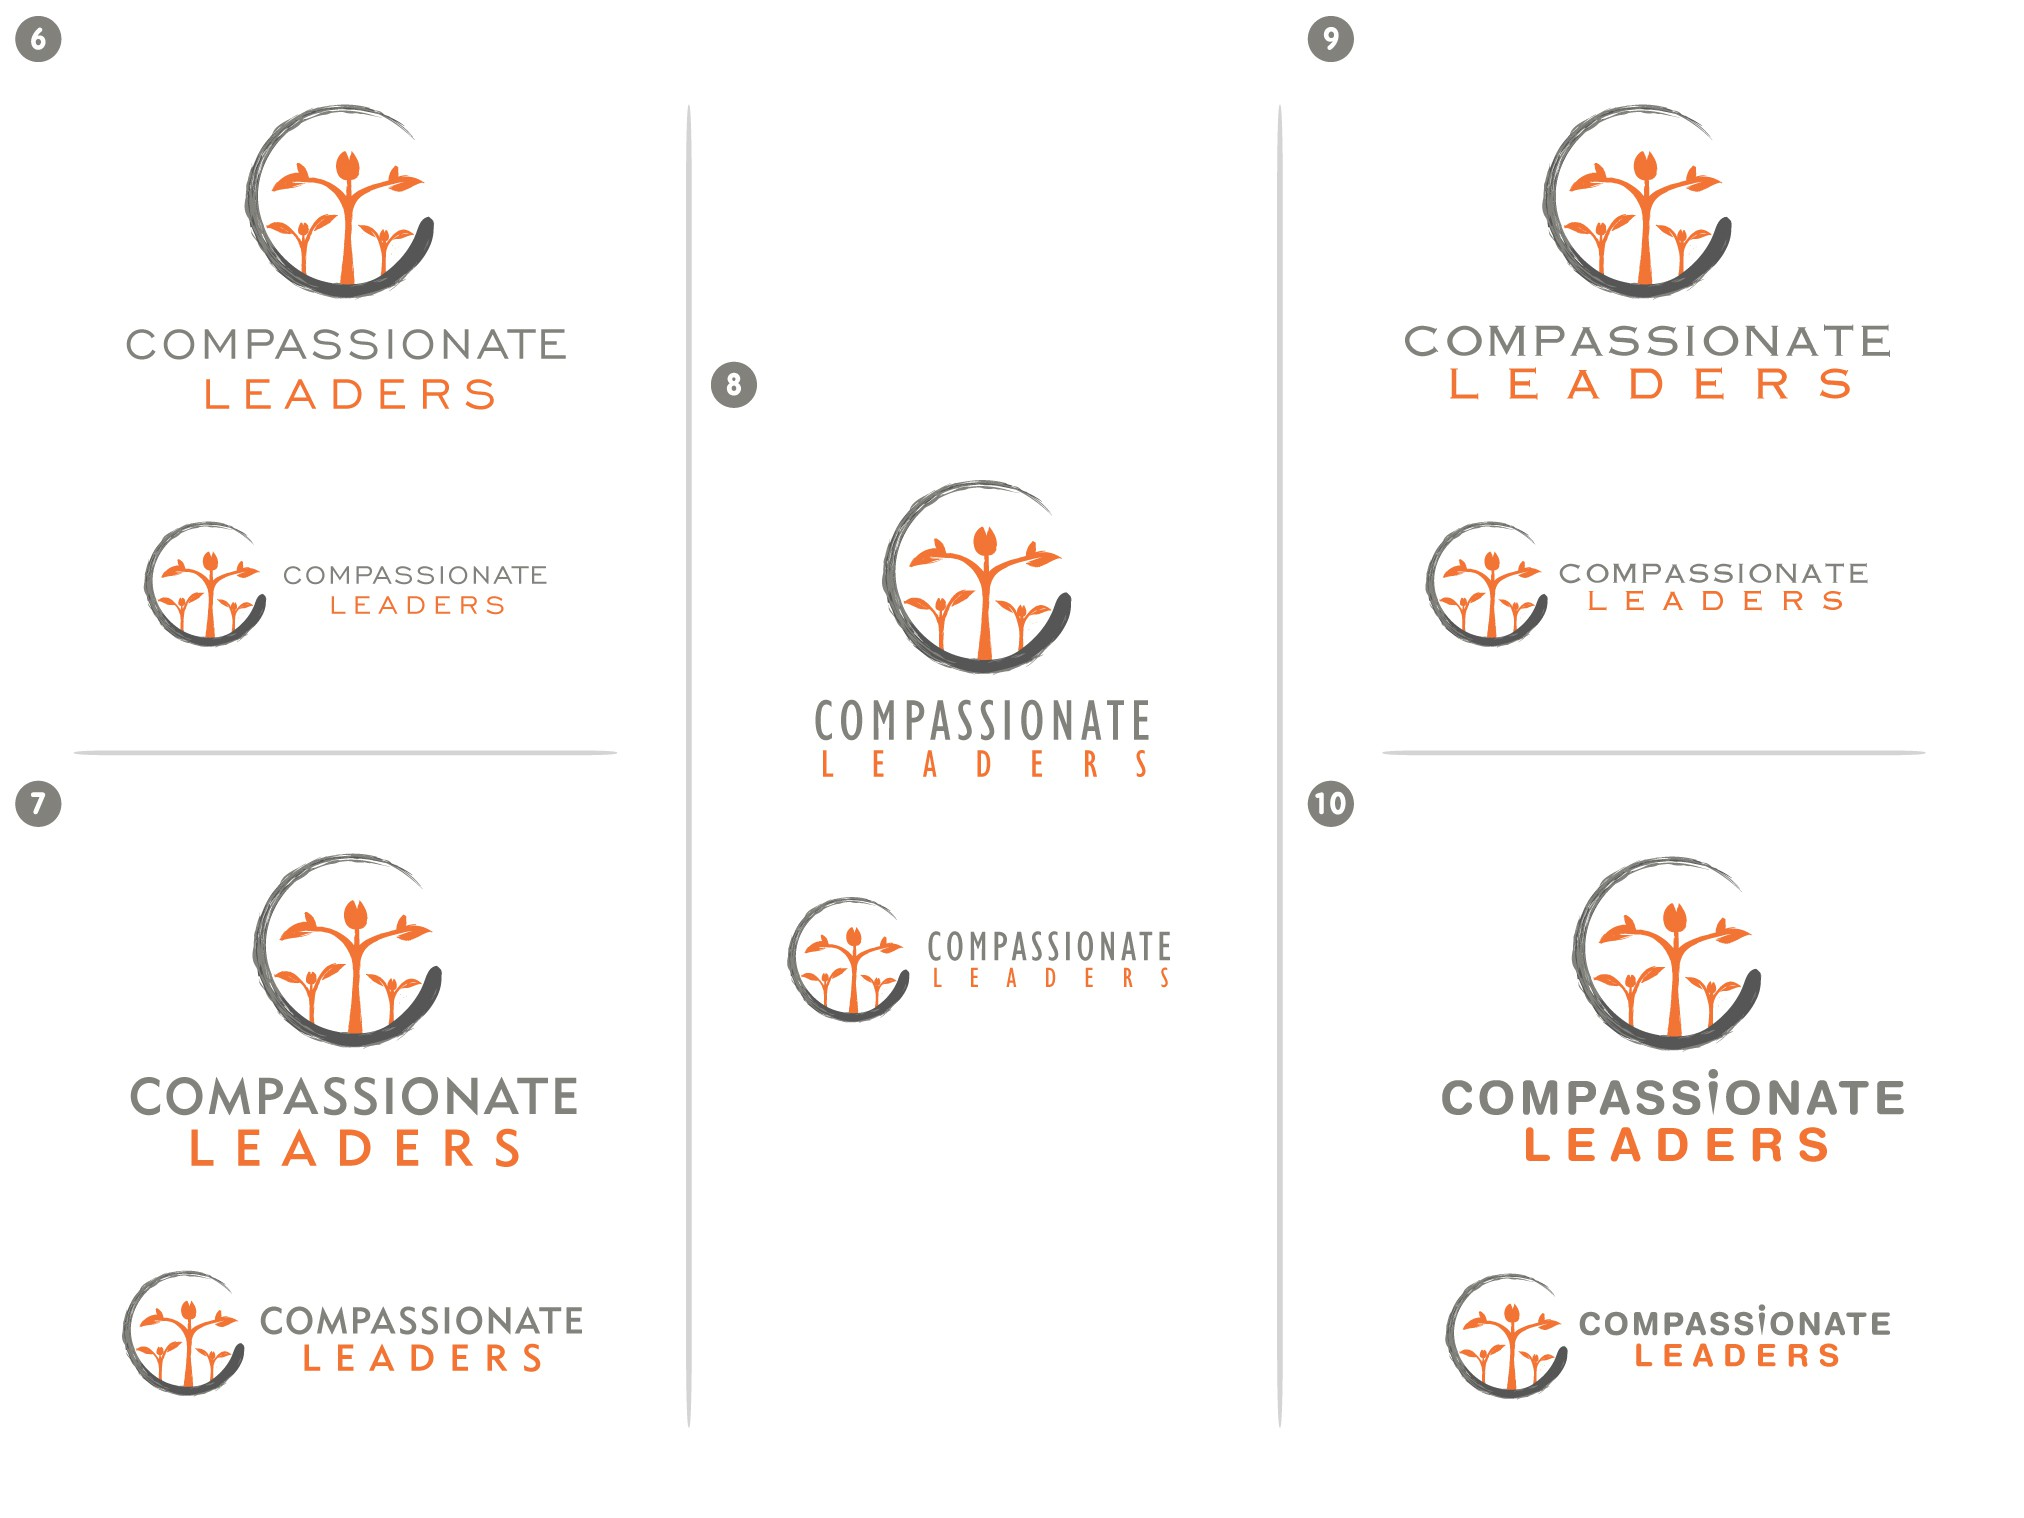 Create an inspiring logo for an education startup empowering 13-18 year old leaders